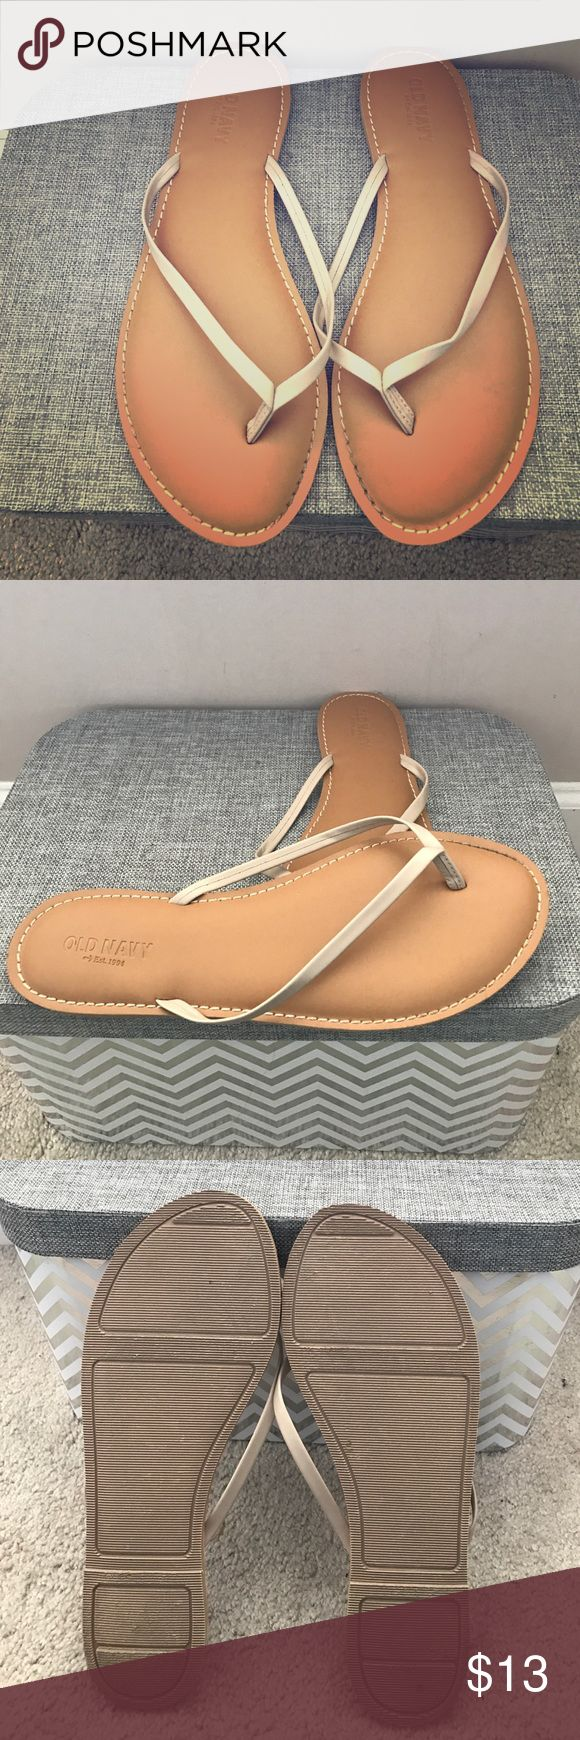 Old Navy Flip-Flops Worn once size 10 with taupe cream color straps Old Navy Shoes Sandals